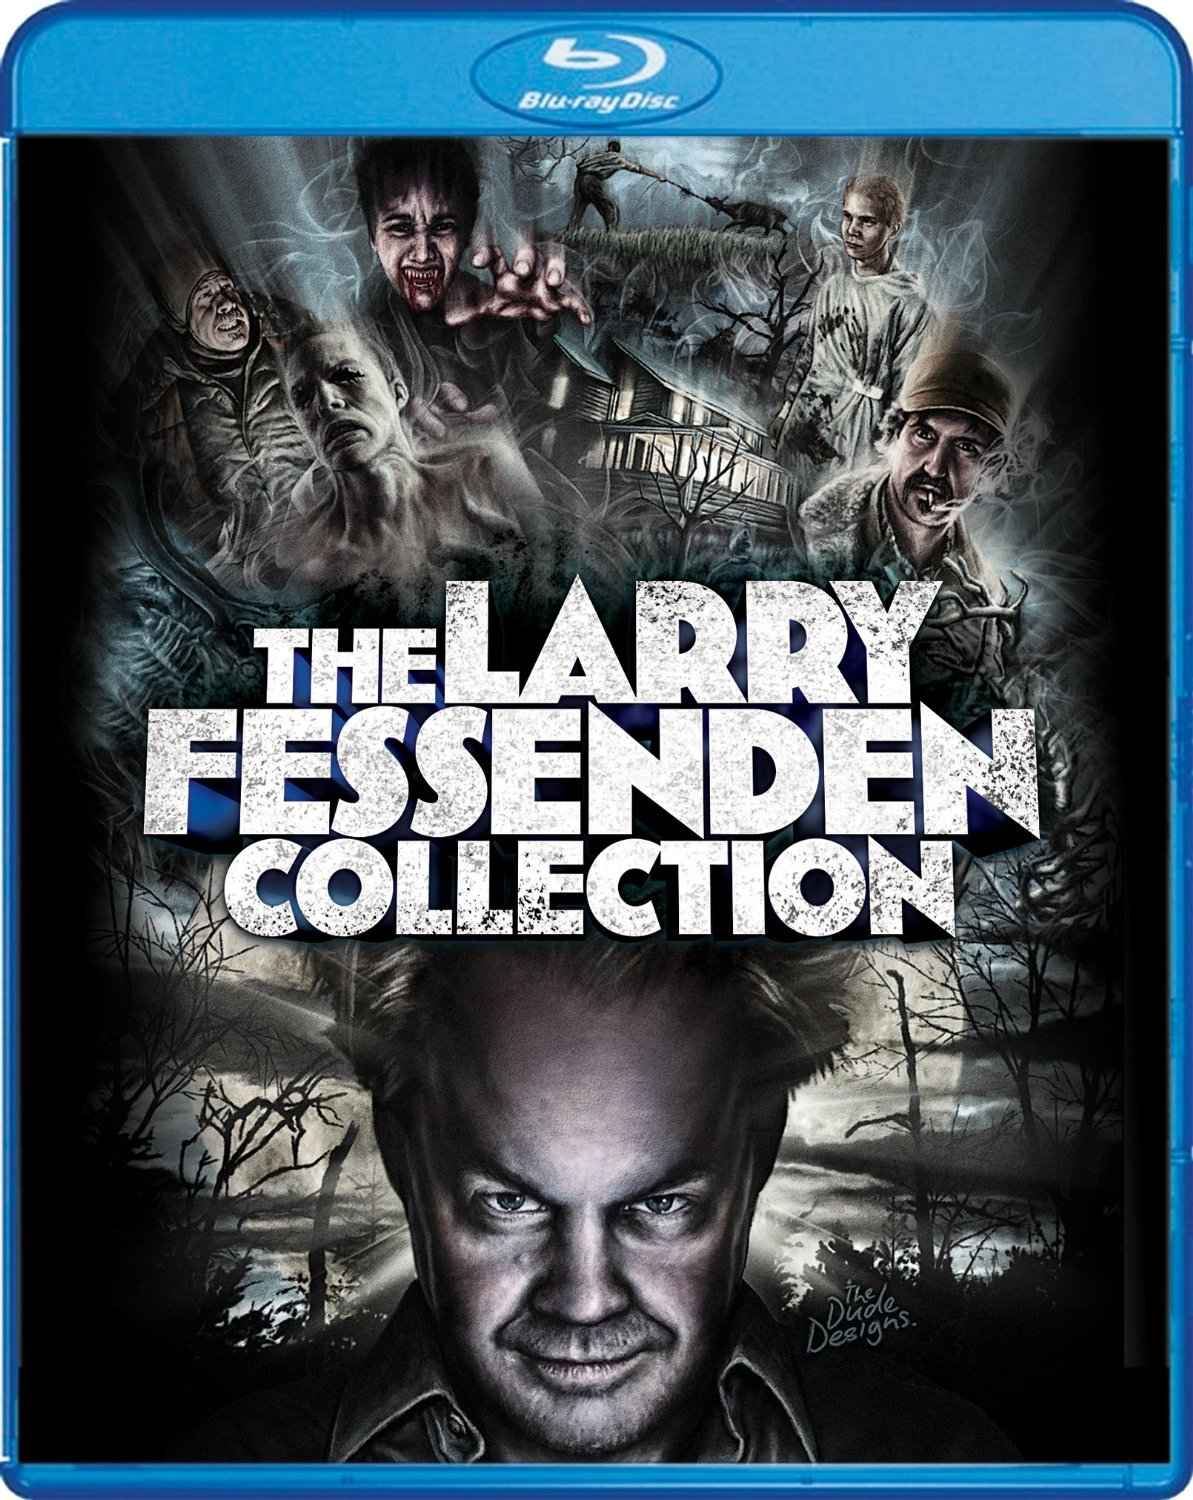 The Larry Fessenden Collection